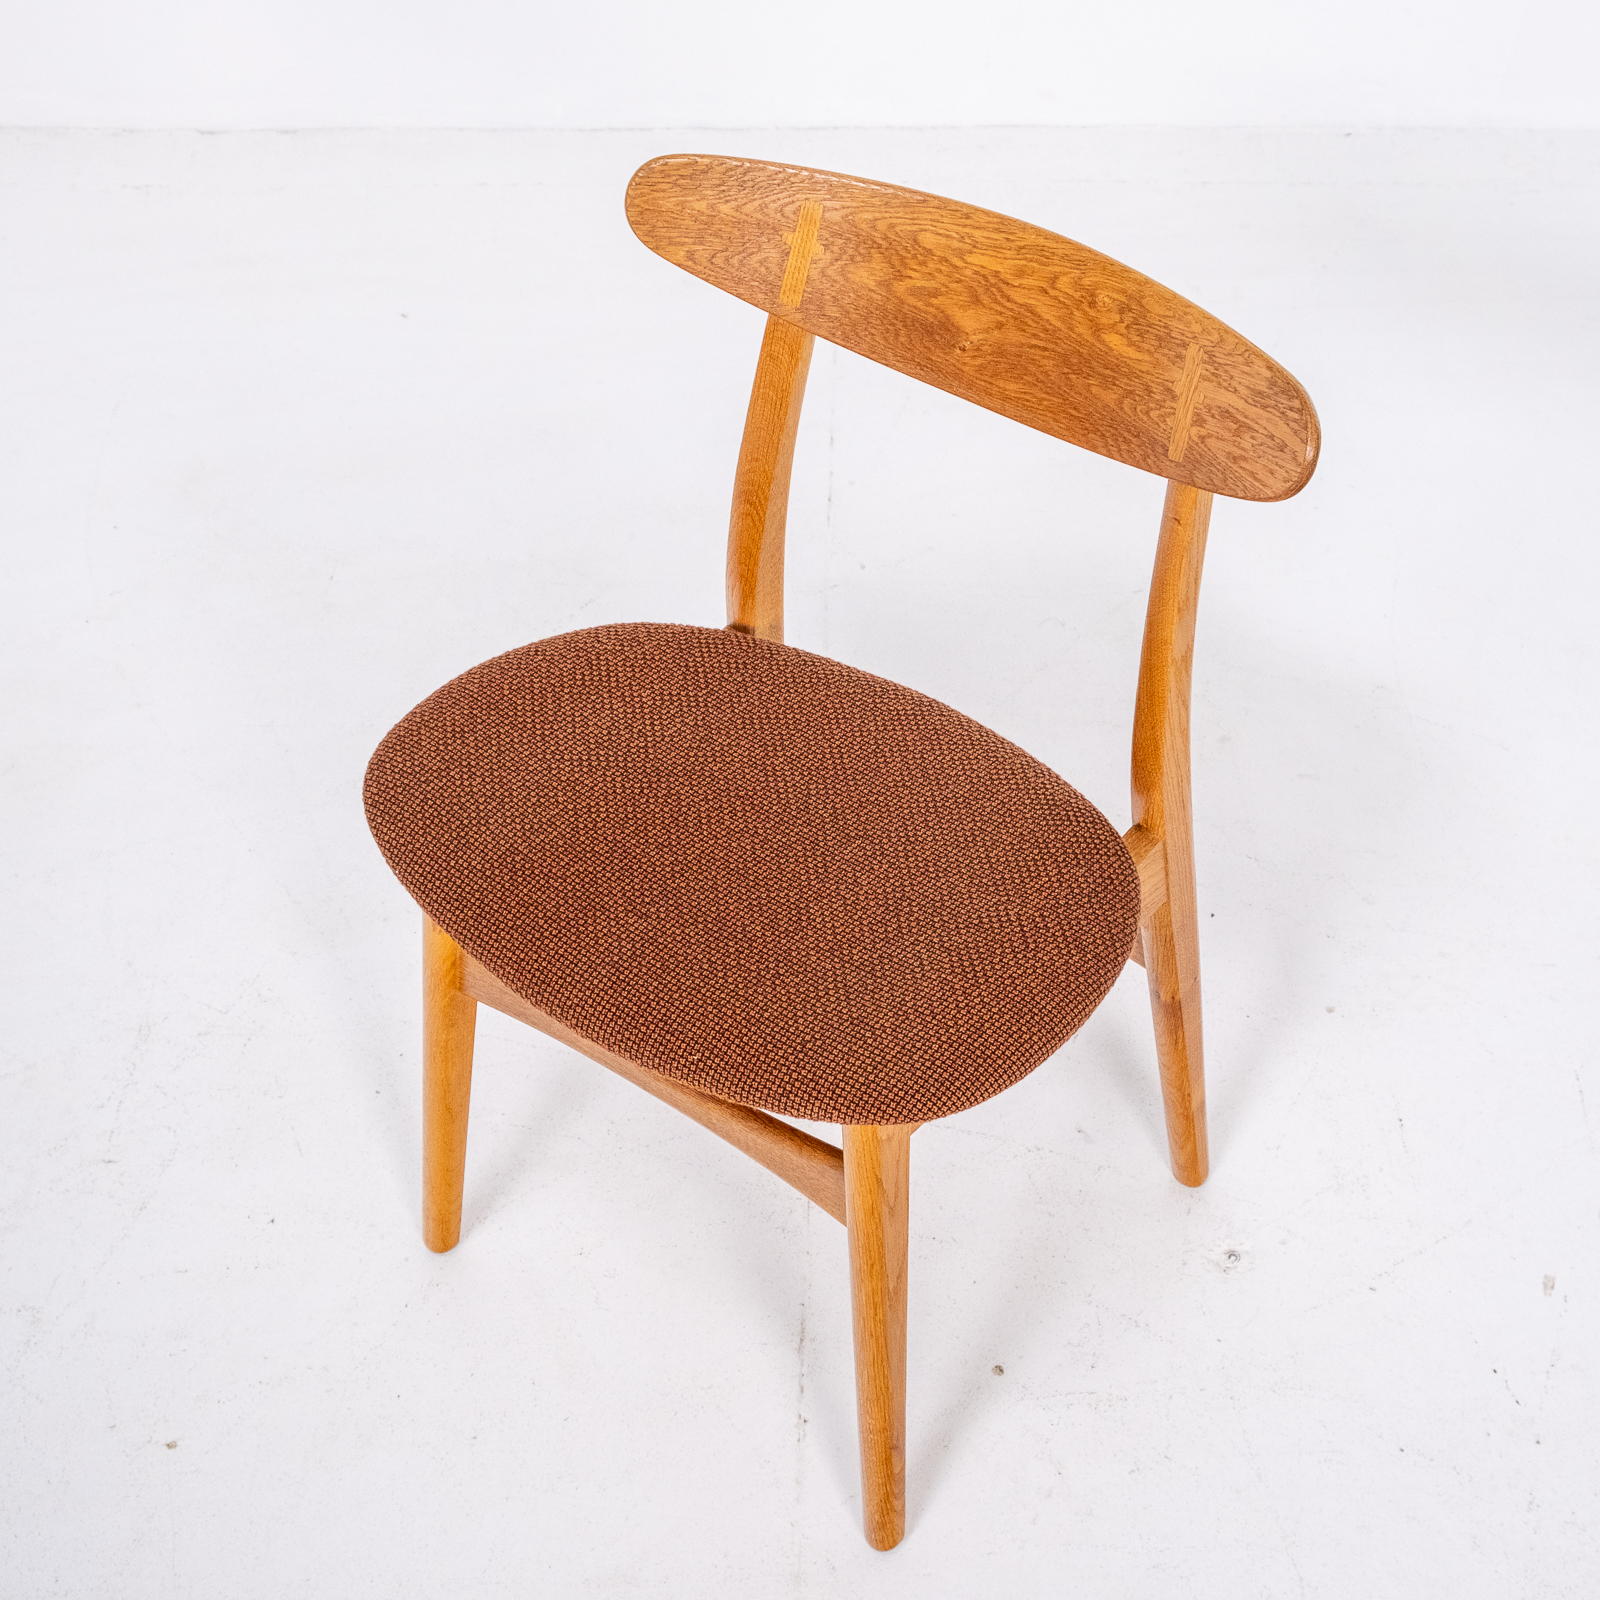 Set Of 4 Ch 30 Dining Chairs By Hans Wegner For Carl Hansen And Son In Oak And Kvadart Upholstery, 1950s, Denmark 04